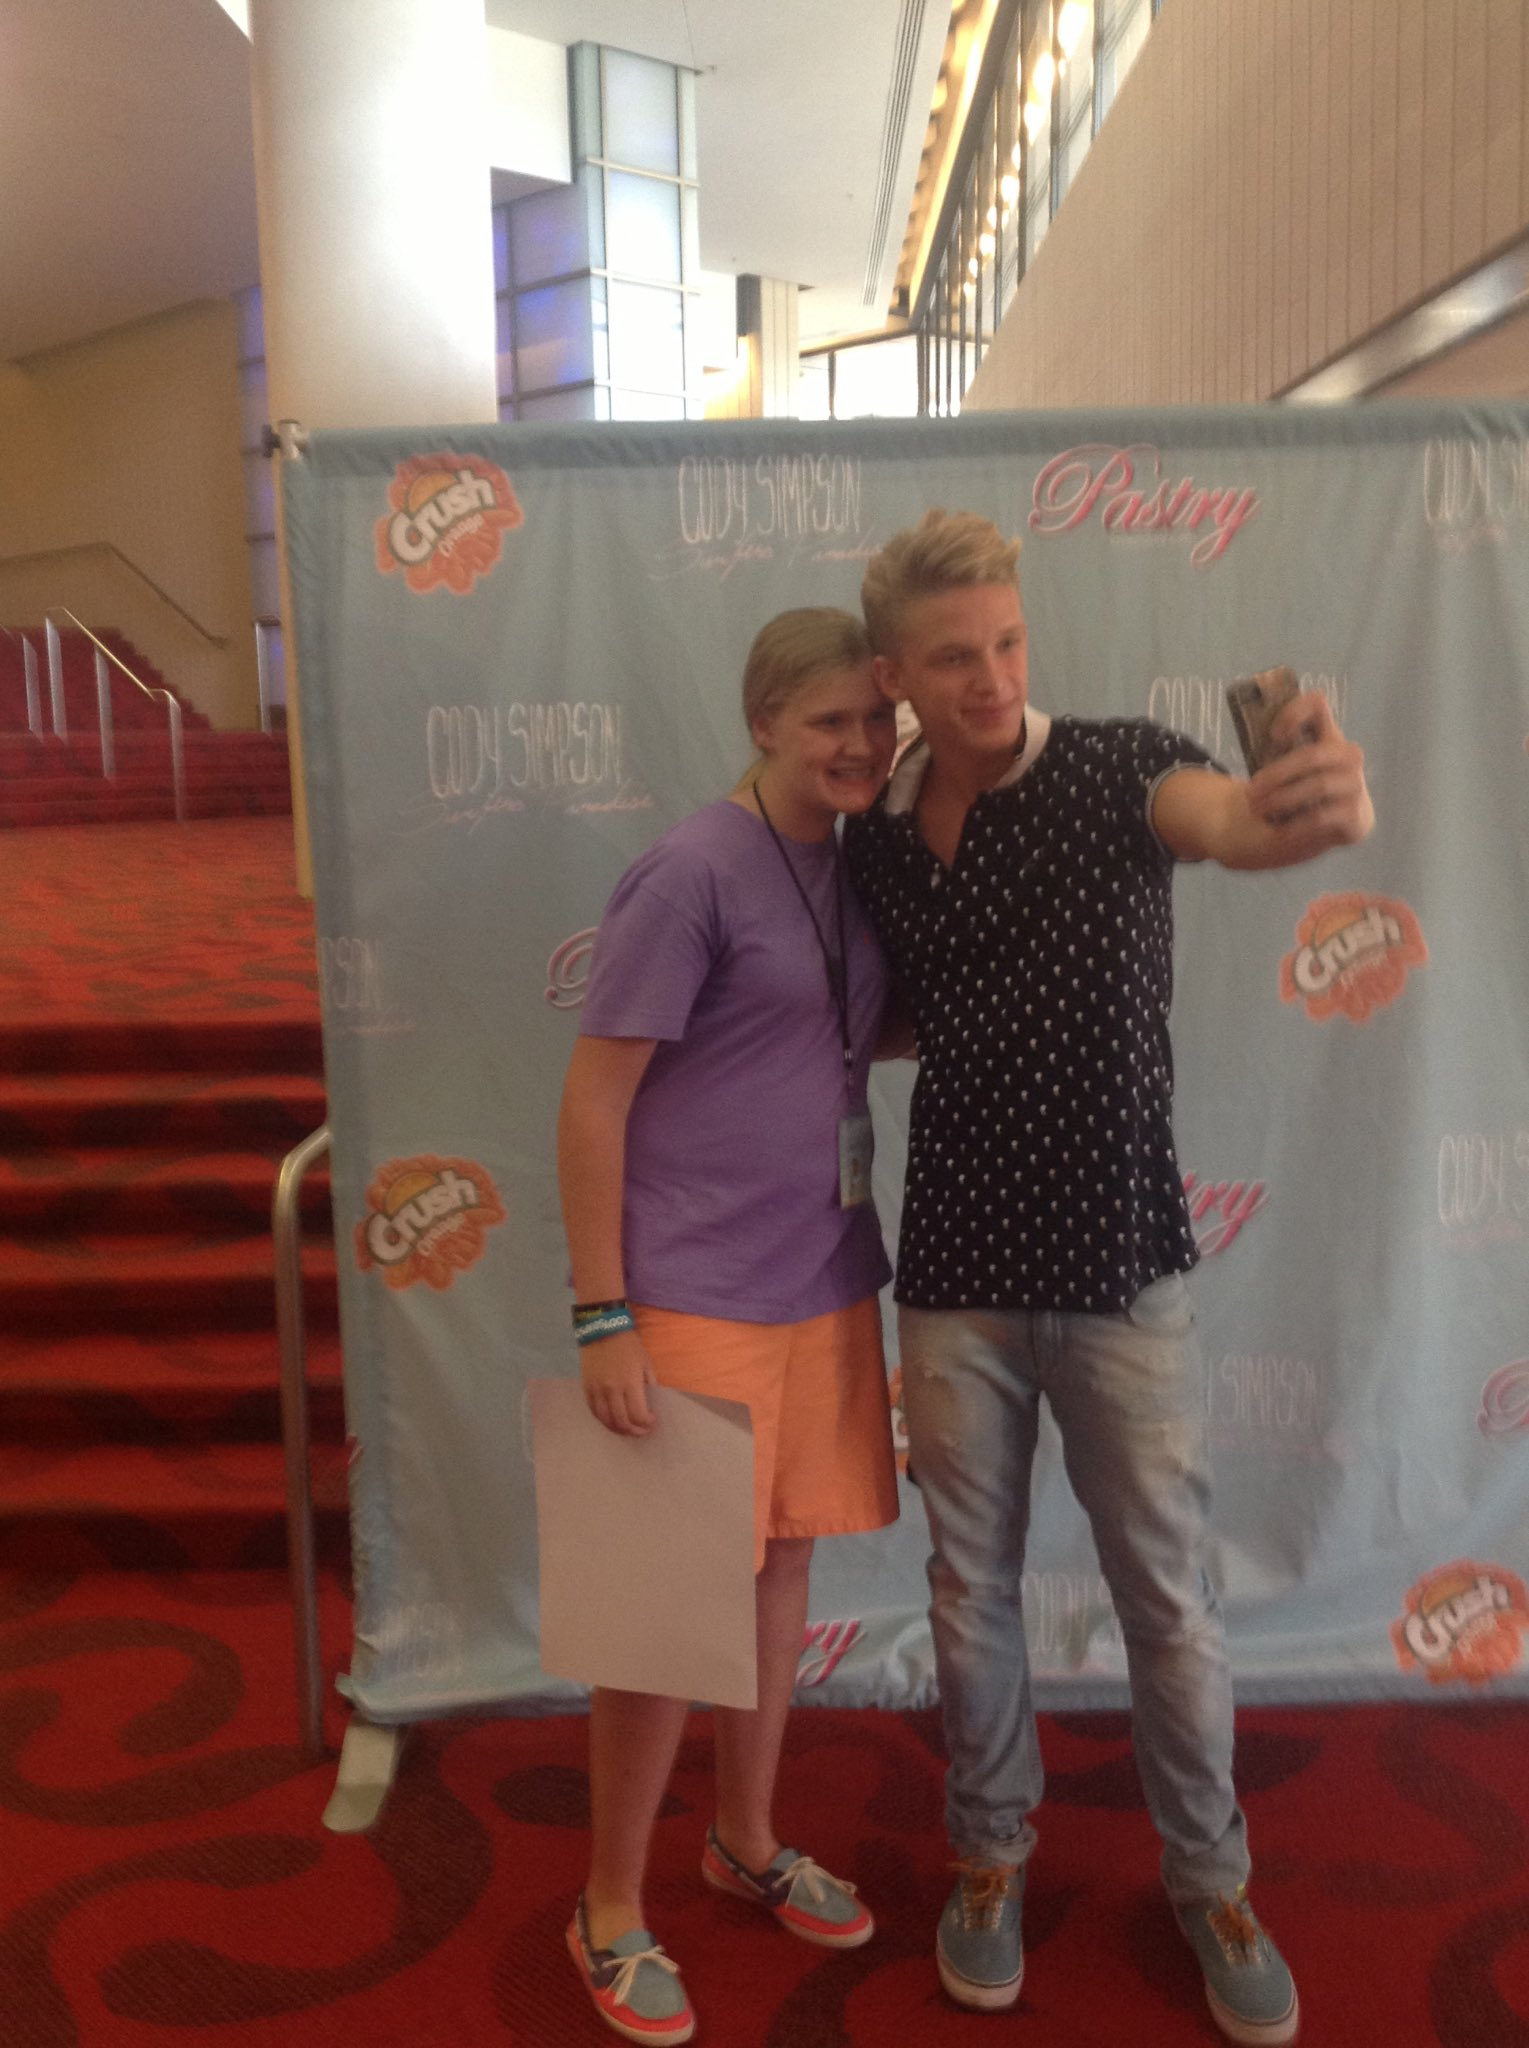 HAPPY BIRTHDAY CODY SIMPSON. GCF FOREVER. I LIKE THIS RIGHT HERE. ANGELS AND GENTLEMAN FOR LIFE.